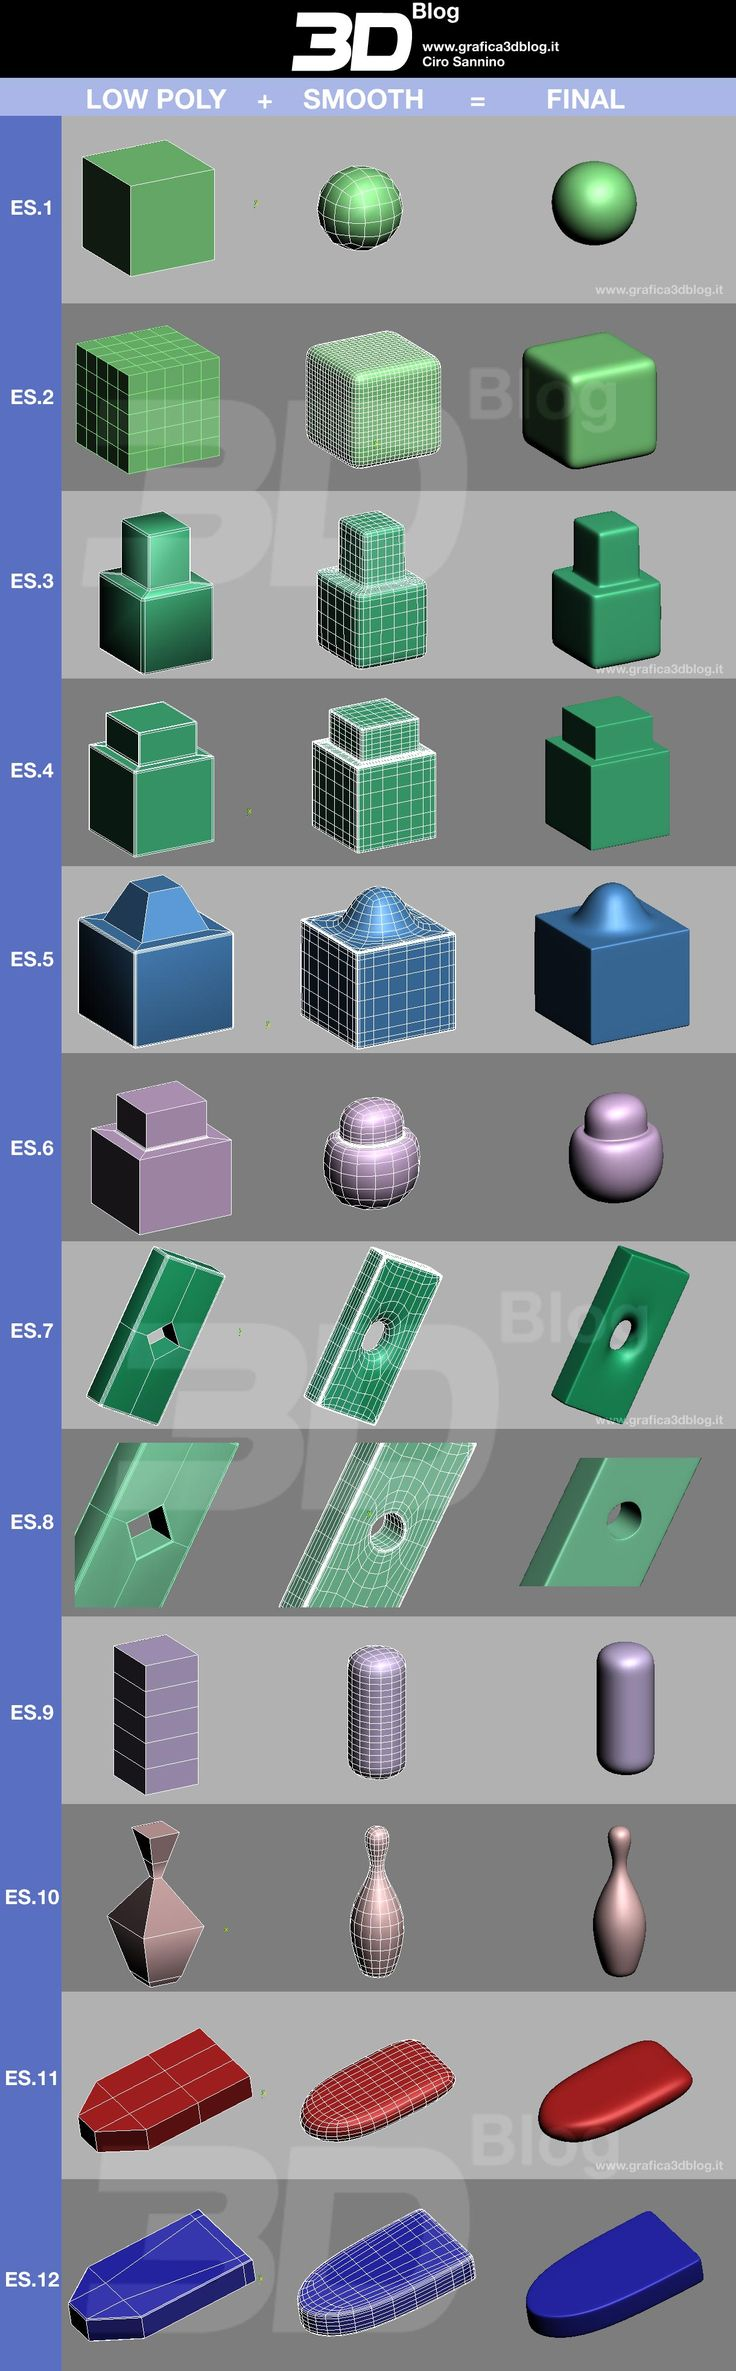 Table's Smooth: improve your awarness - Low poly + Meshsmooth | Cg Blog